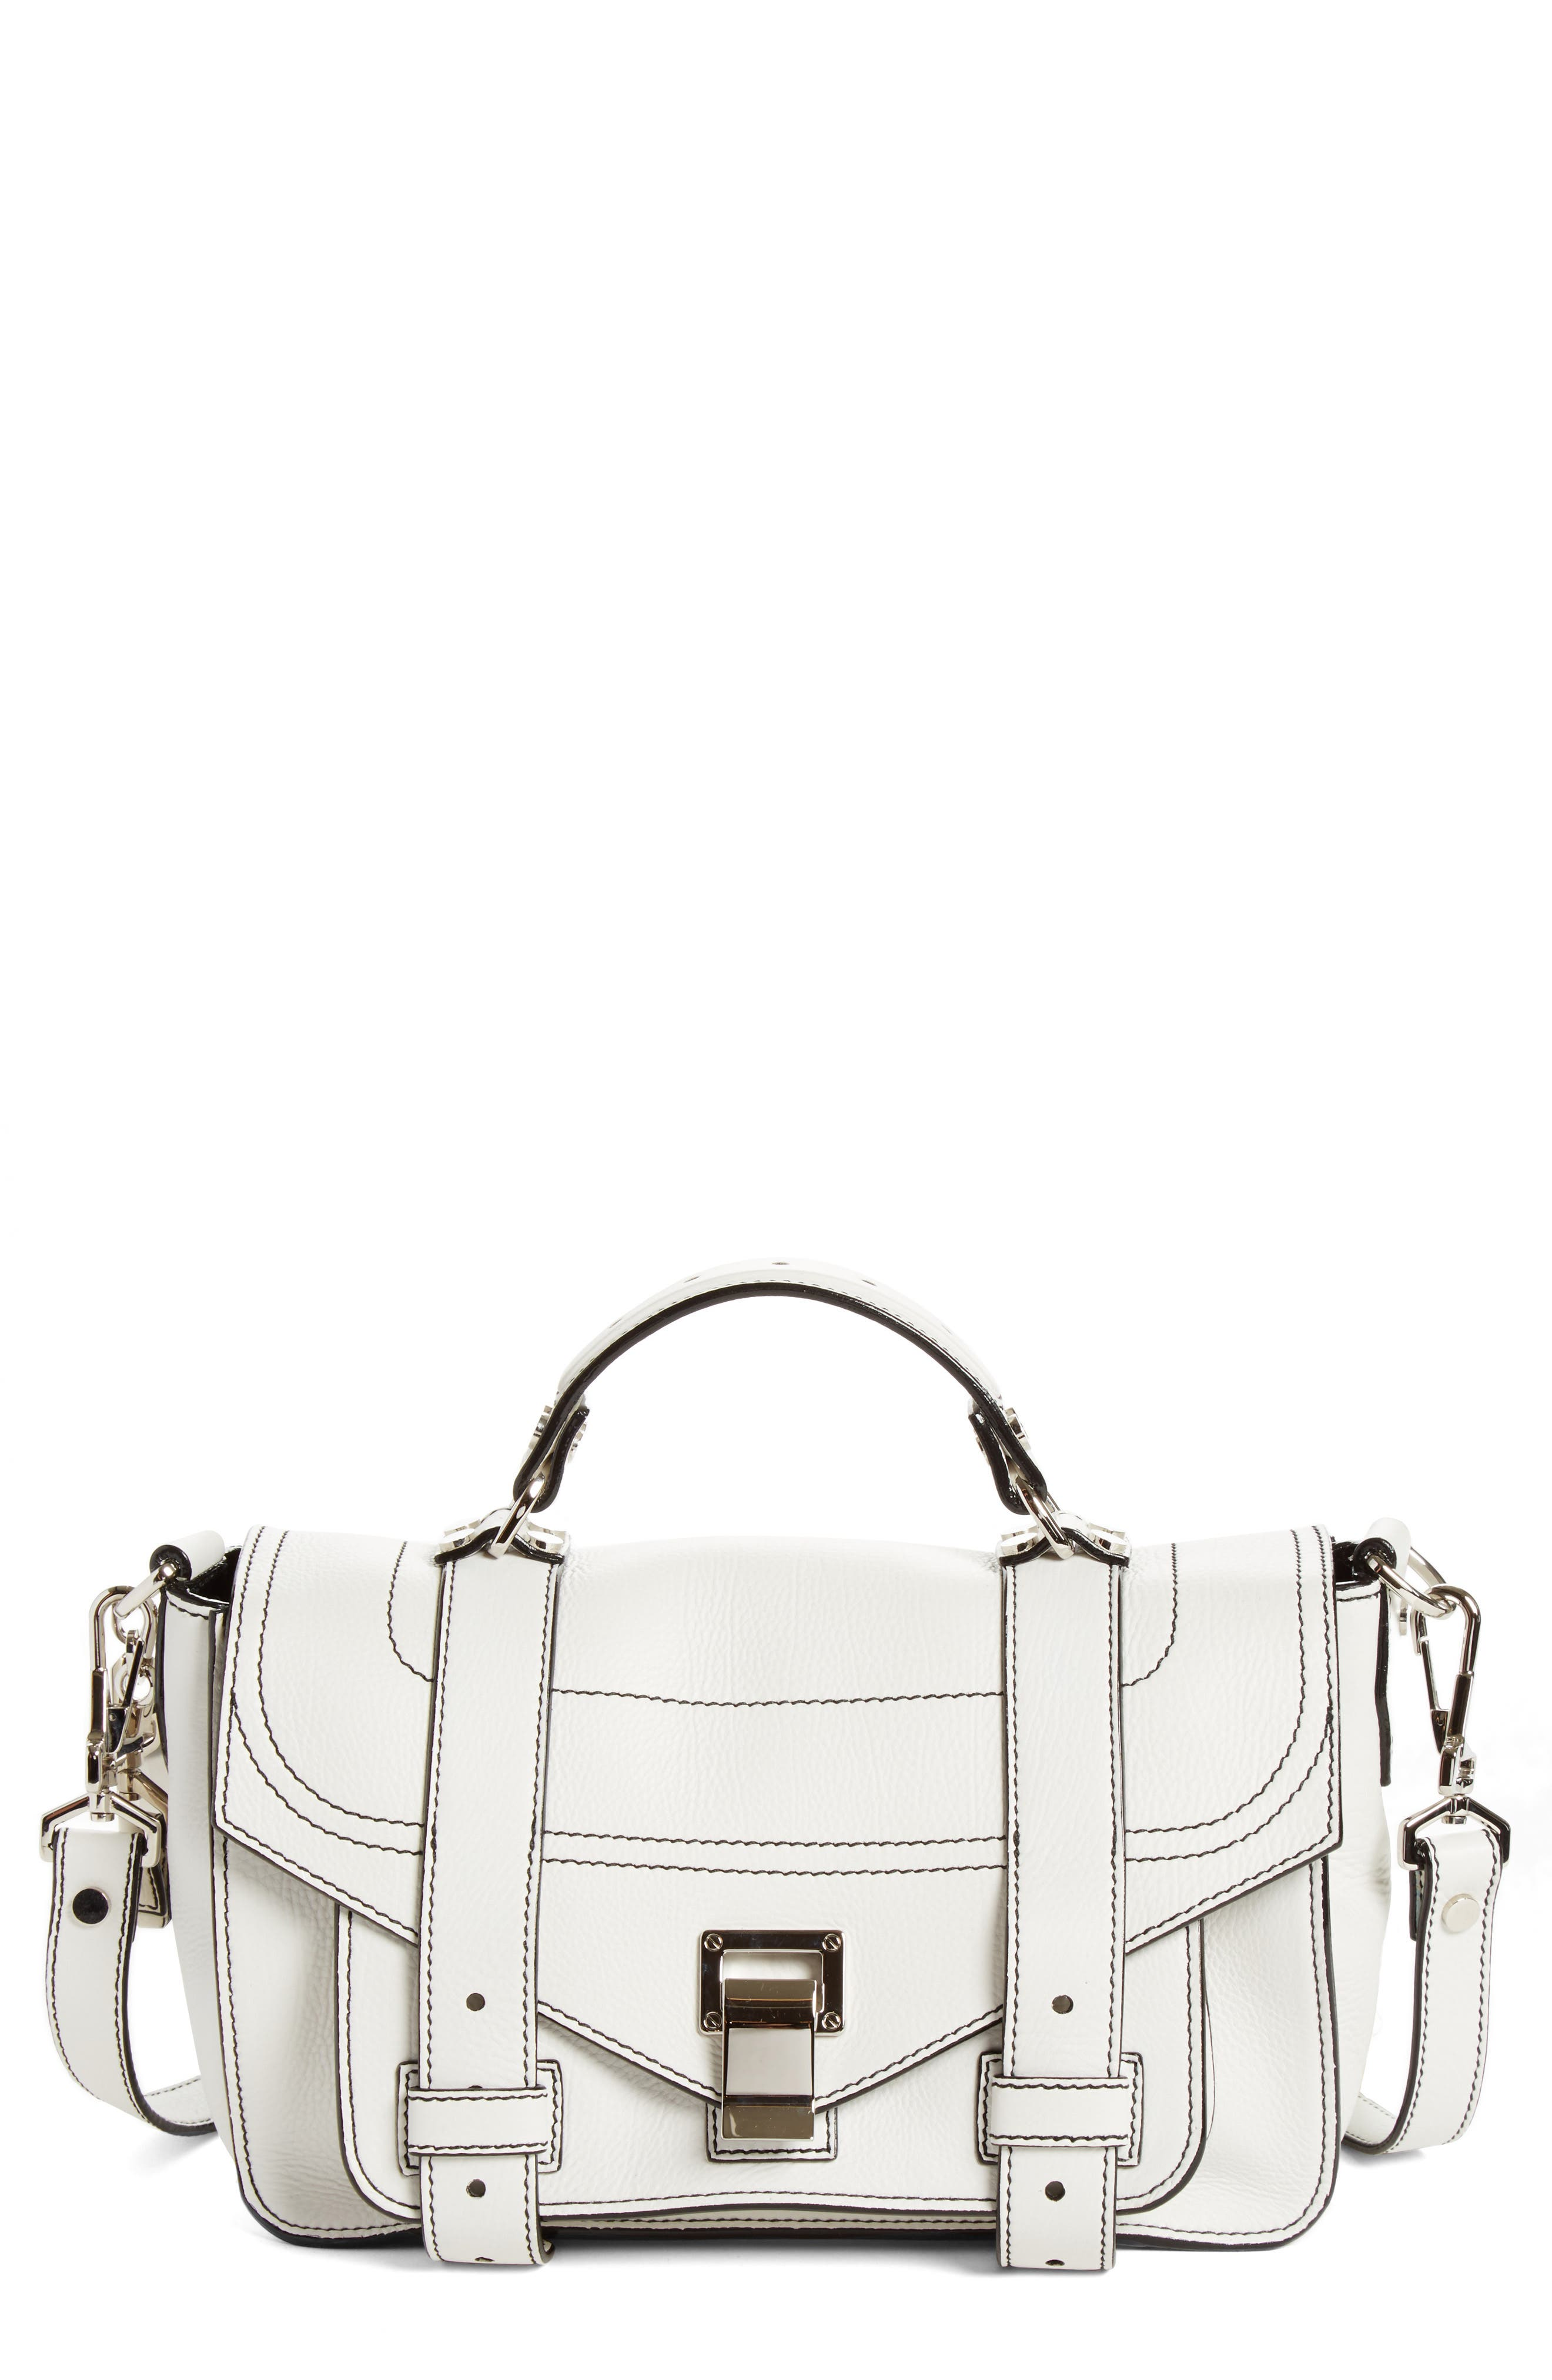 PROENZA SCHOULER Tiny PS1+ Grainy Leather Satchel